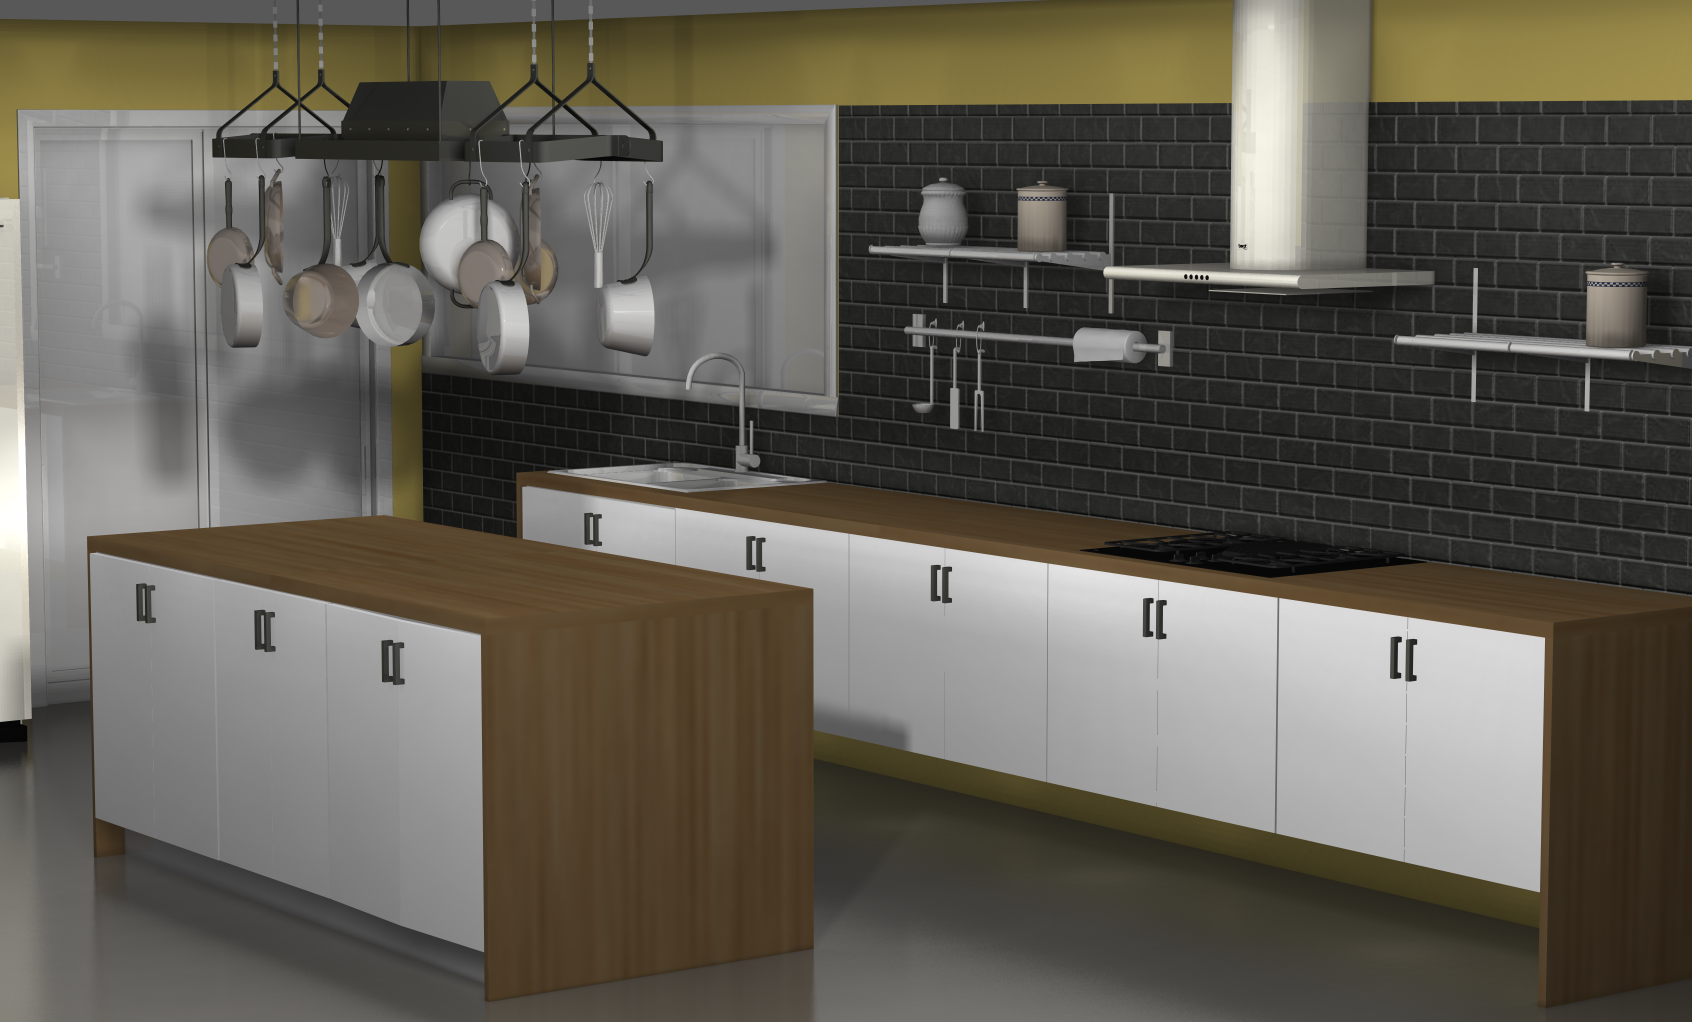 ideas for an ikea kitchen with fewer wall cabinets kitchen wall cabinets One